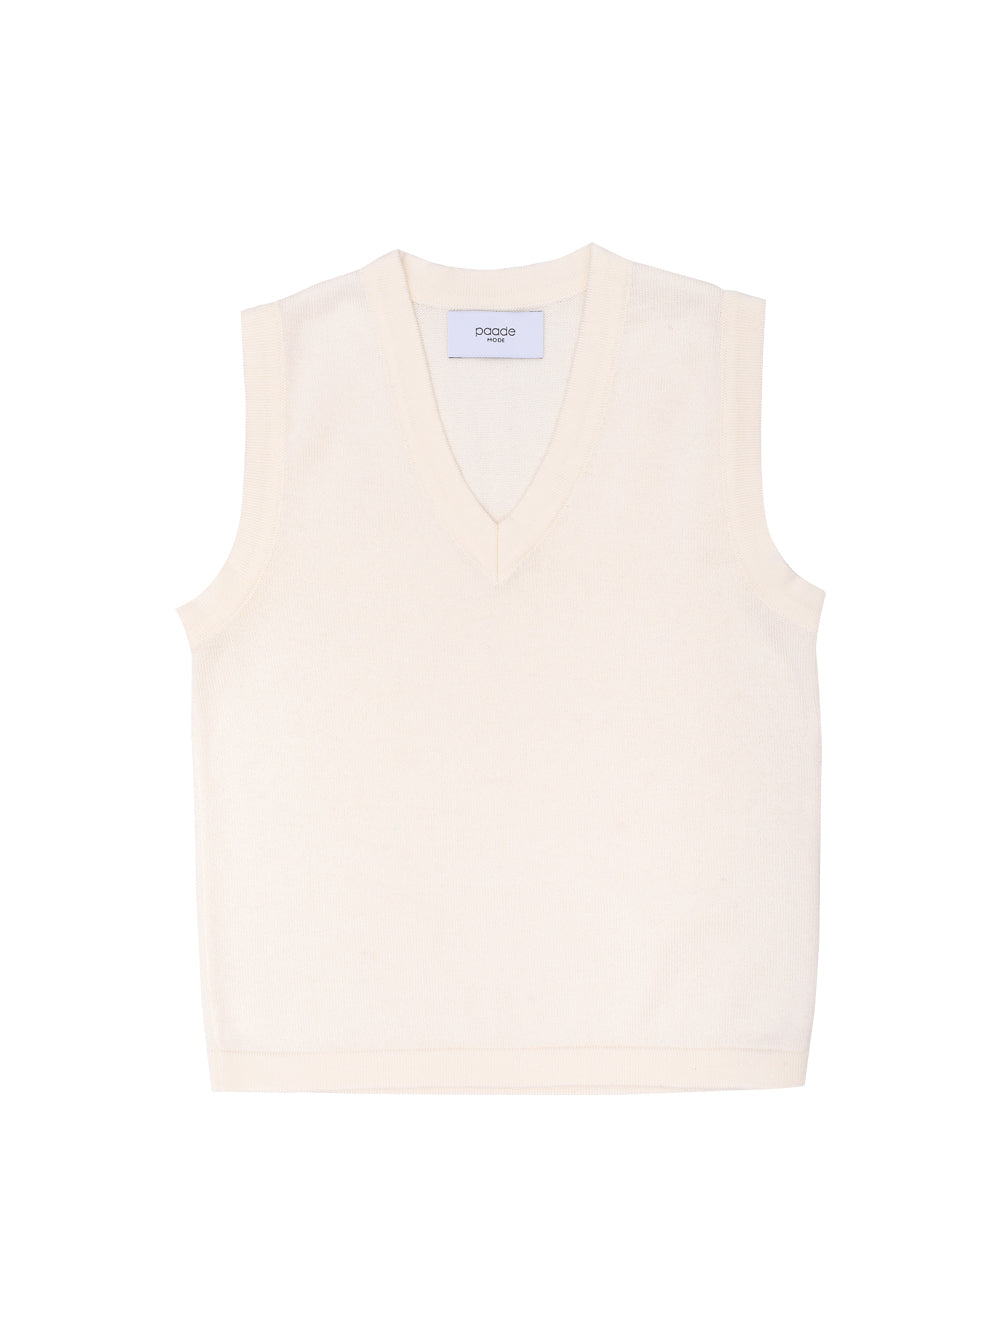 White Cotton Vest